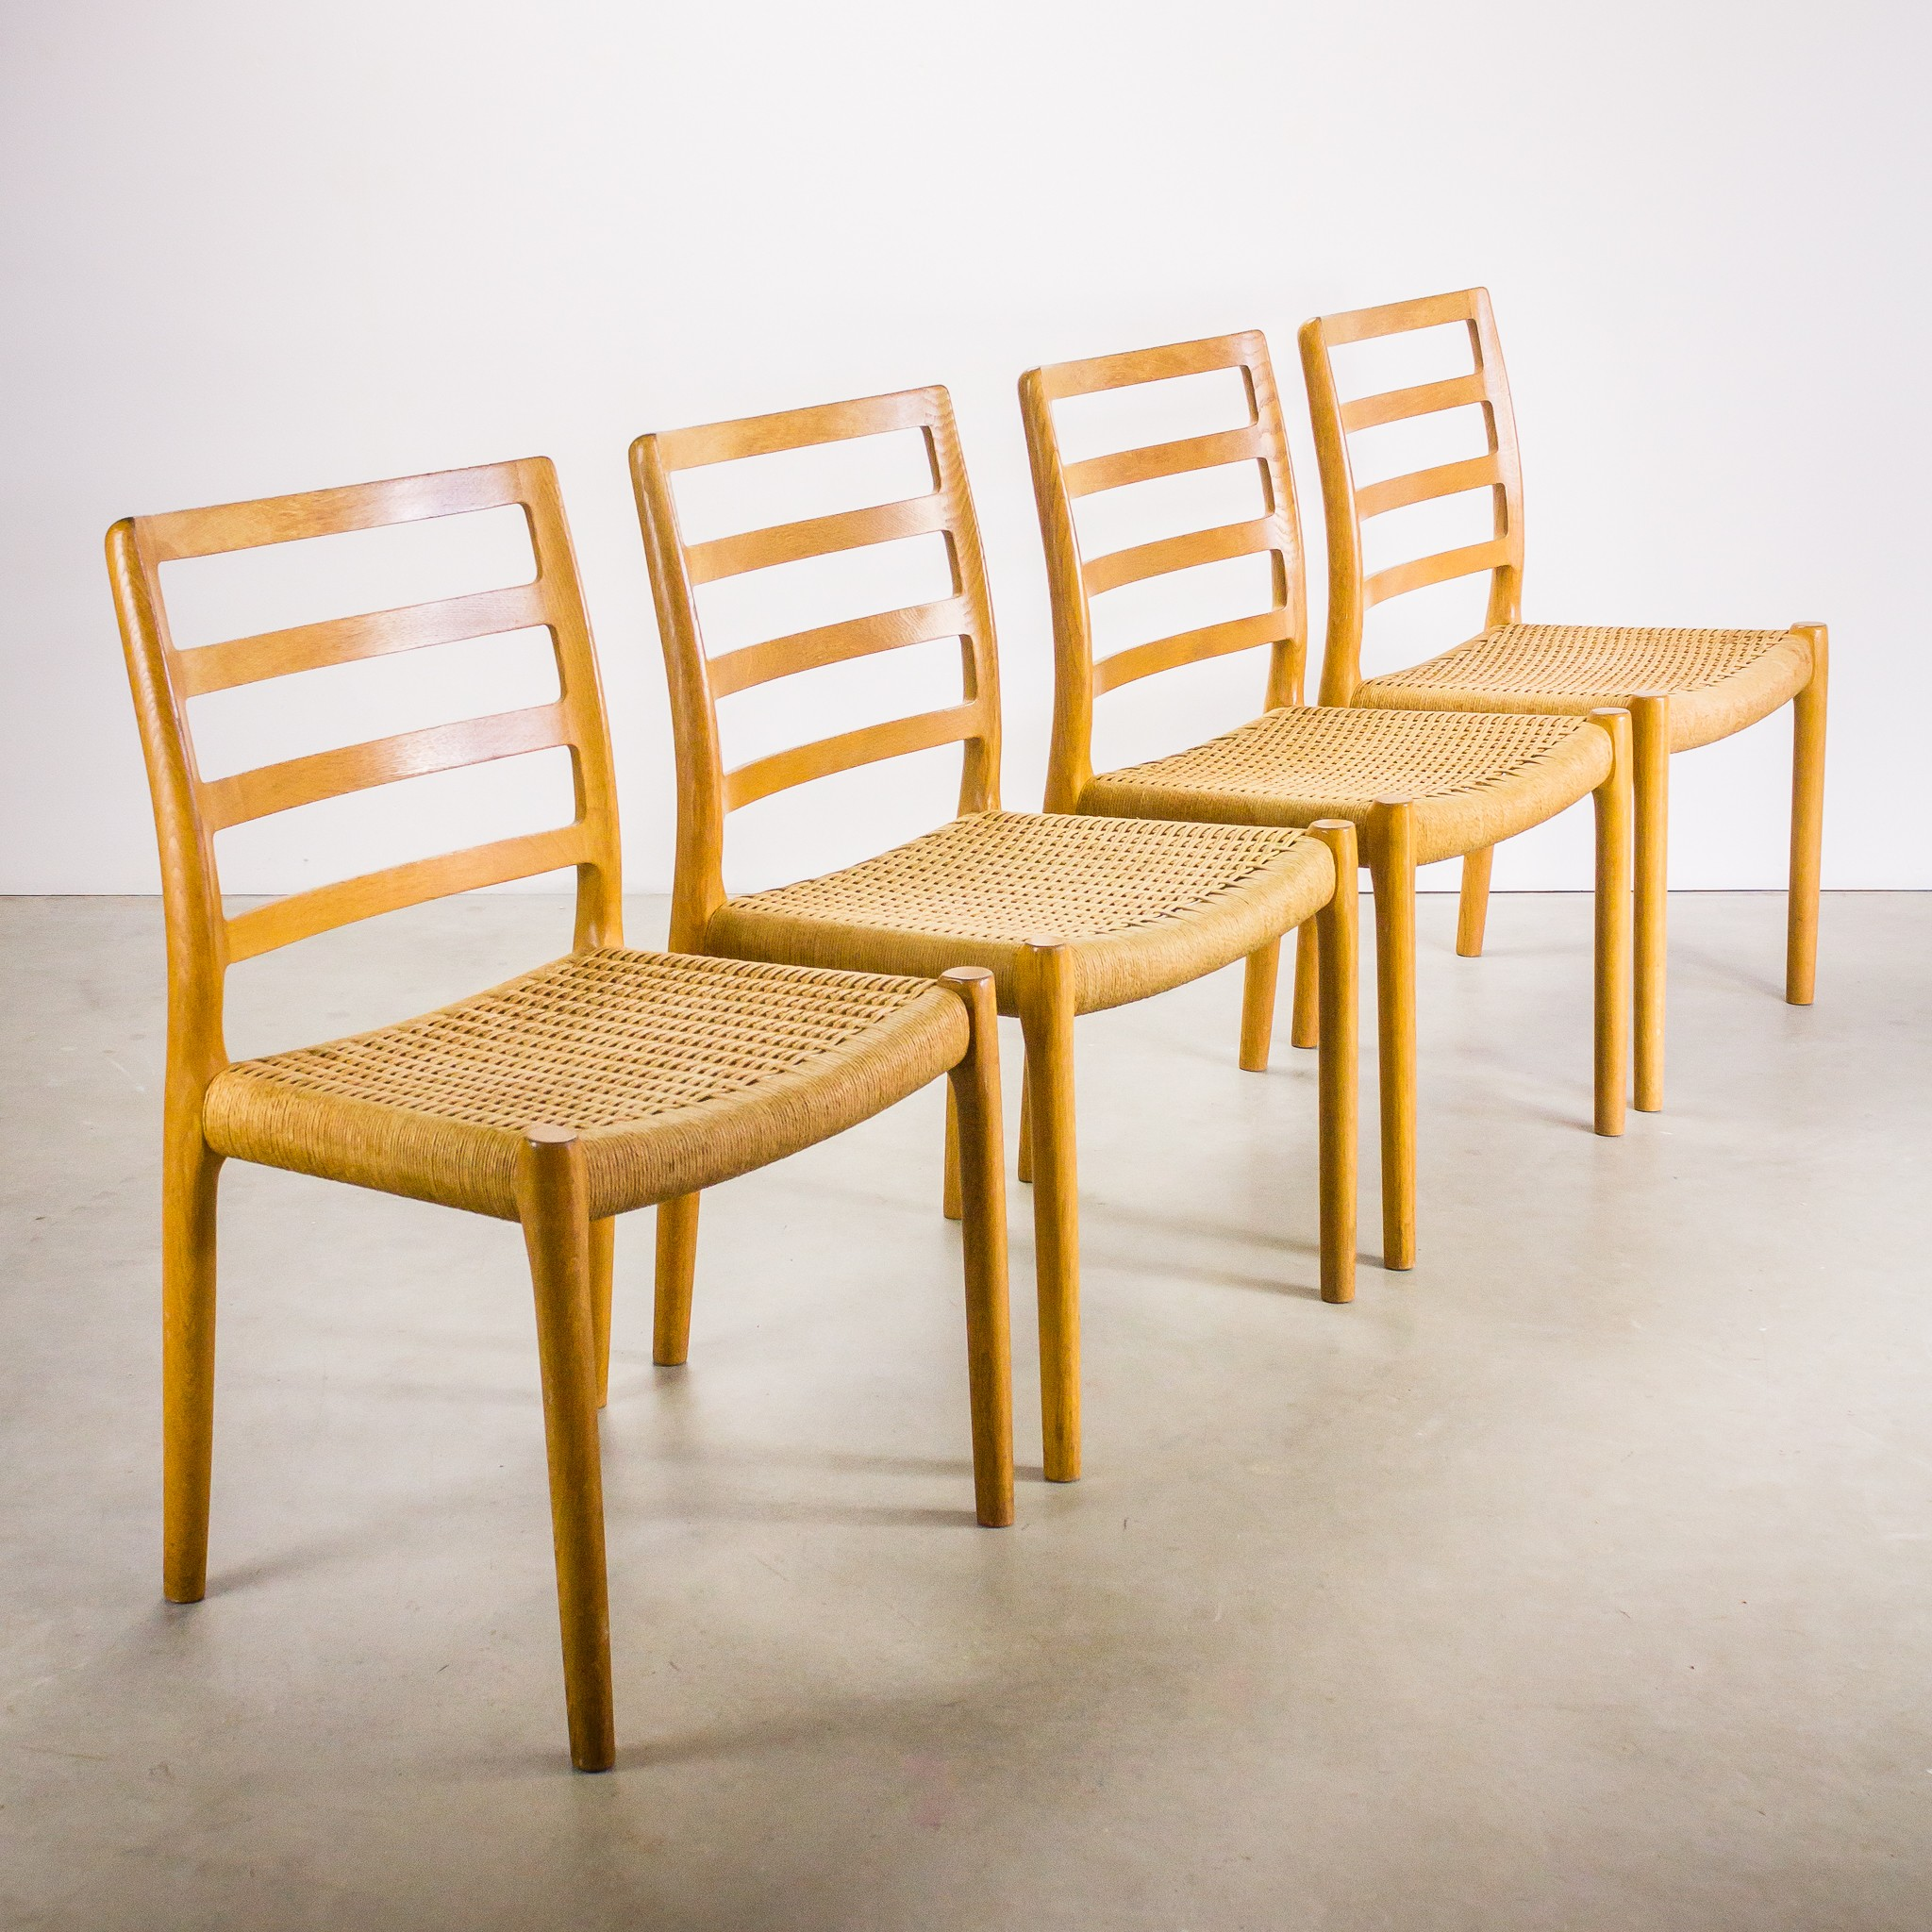 Chairs in birch wood with papercord seating previous next